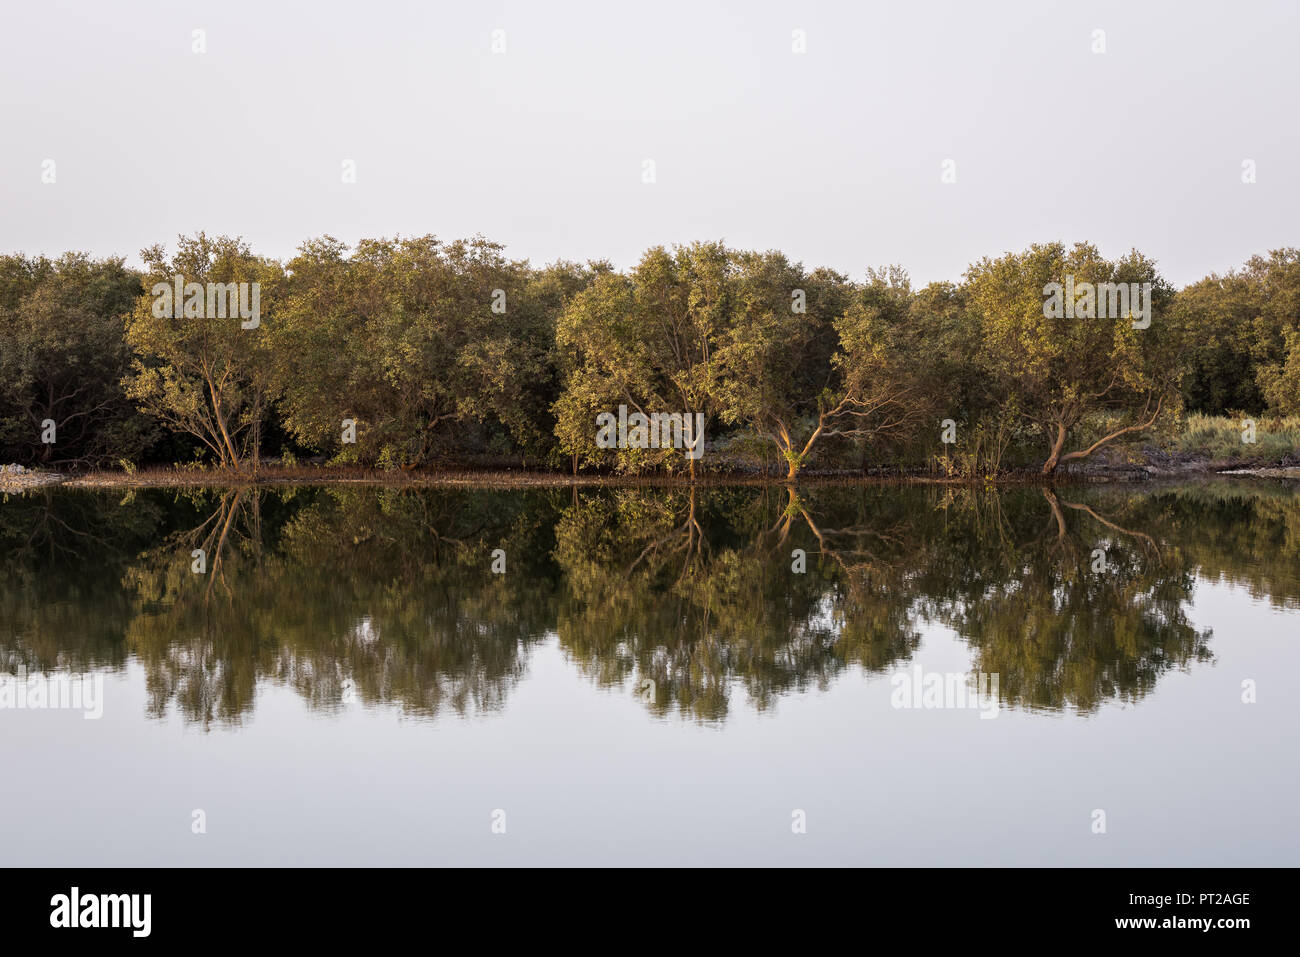 Reflection of Mangrove trees in the water, Abu Dhabi, UAE - Stock Image